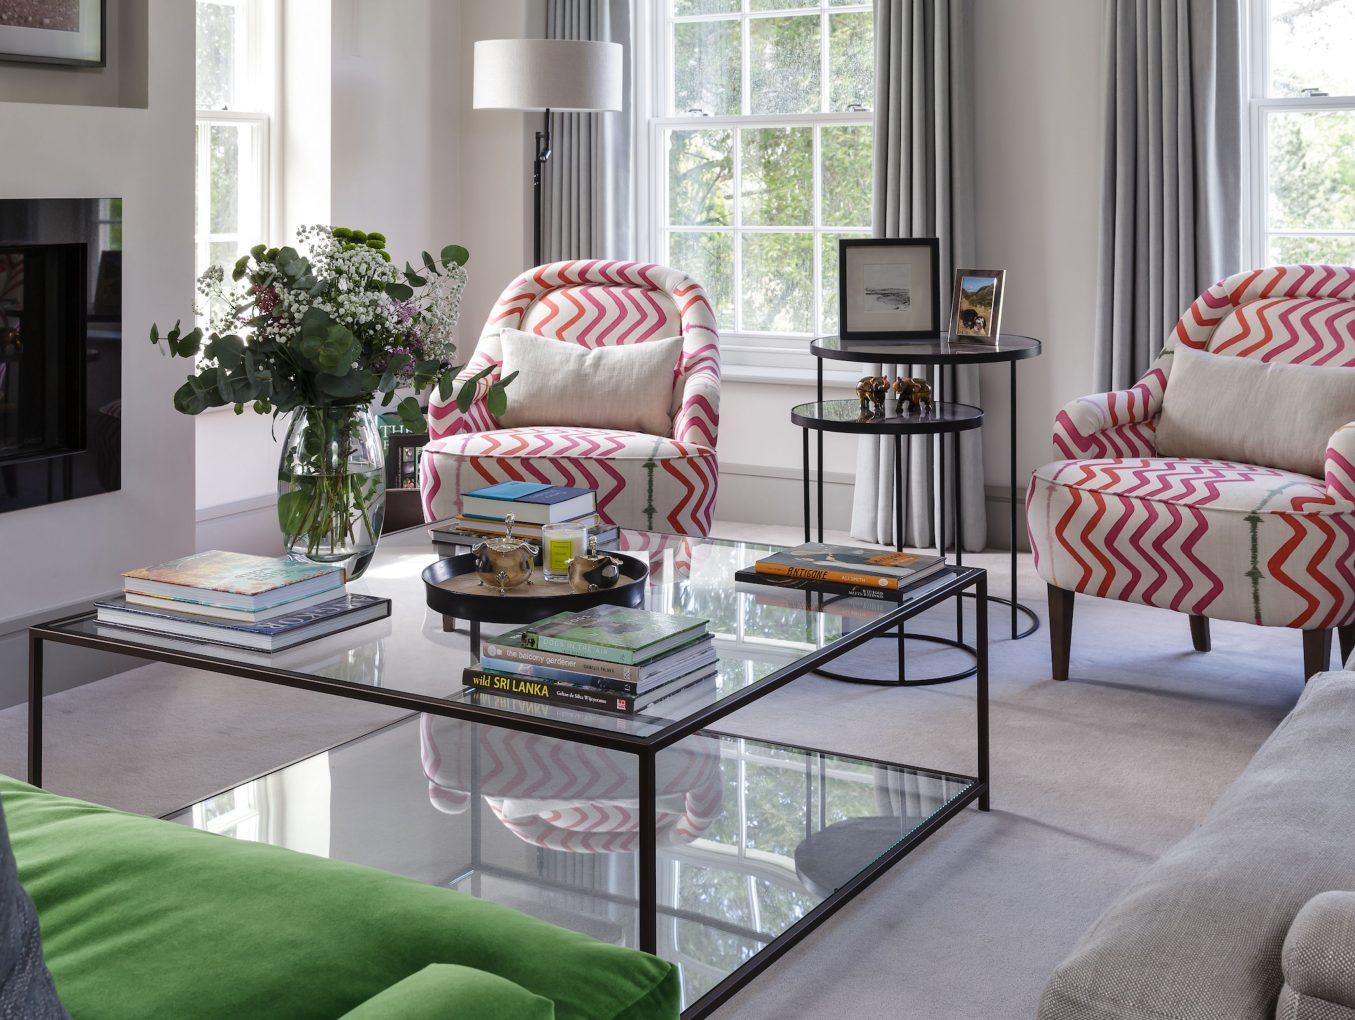 Top Five Interior Design Trends for 2020 and beyond